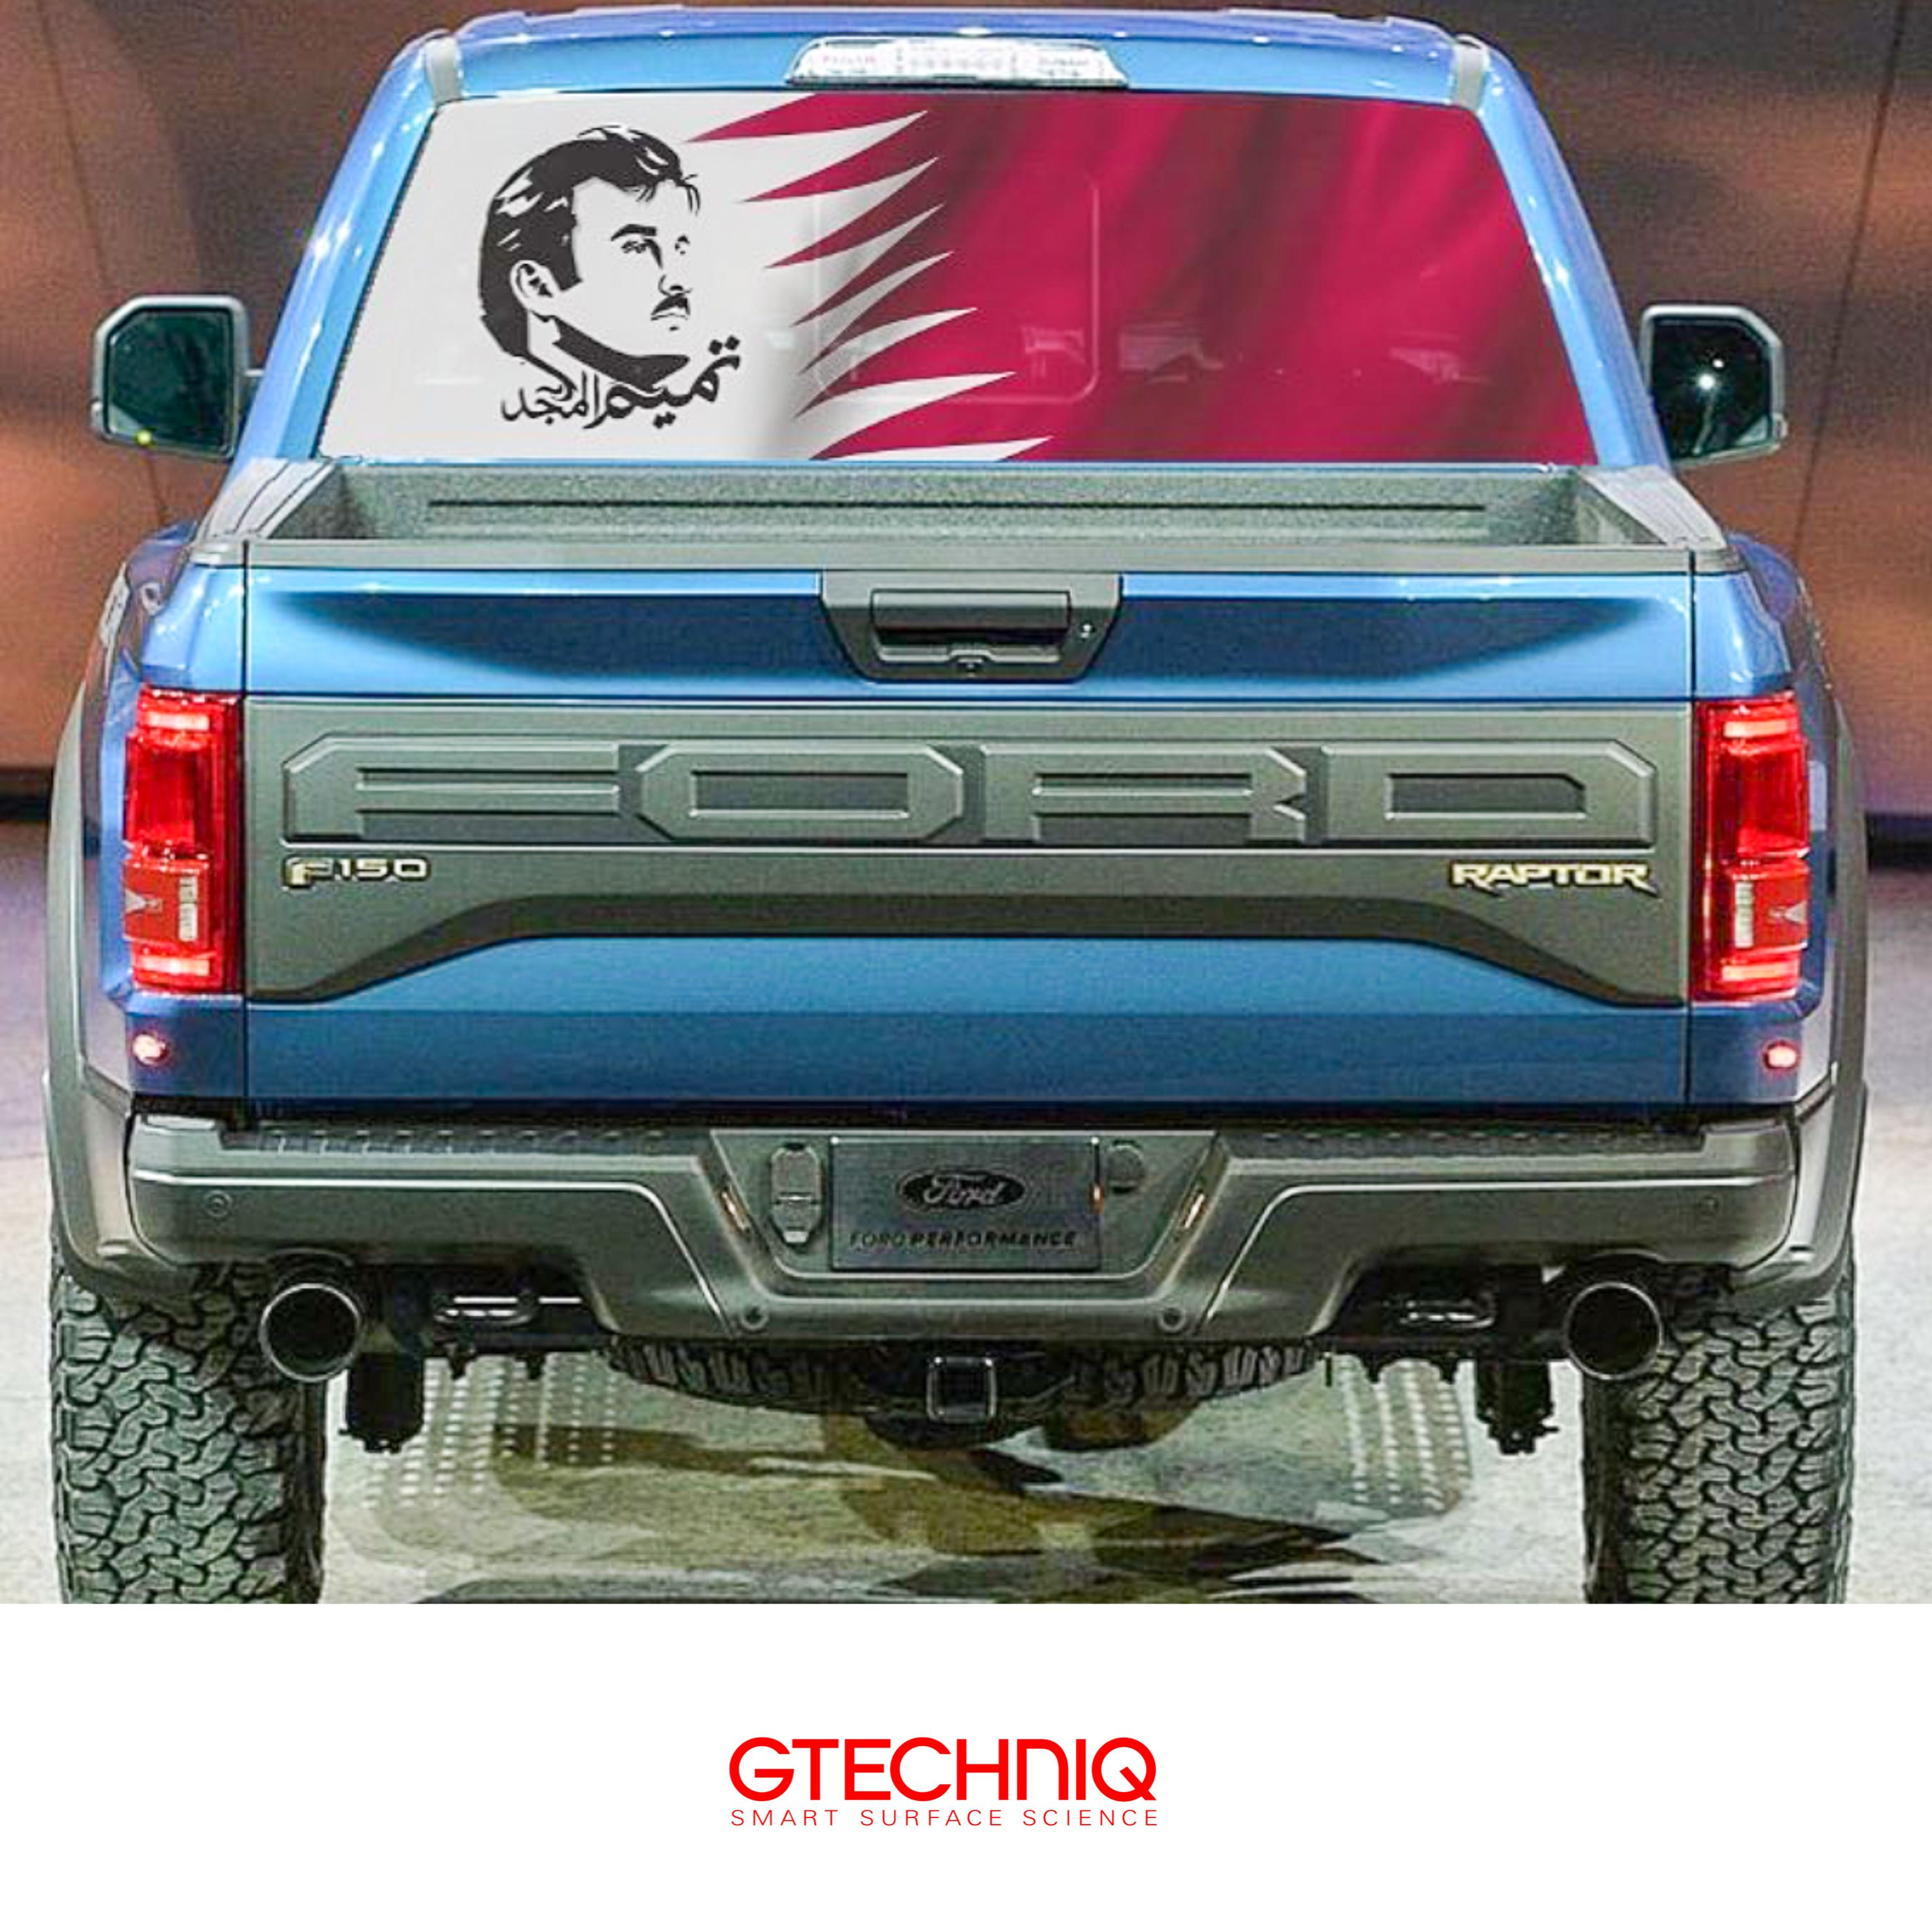 Ford 150 Raptor Firtstly Wrapped Then Protected By Gtechniq And